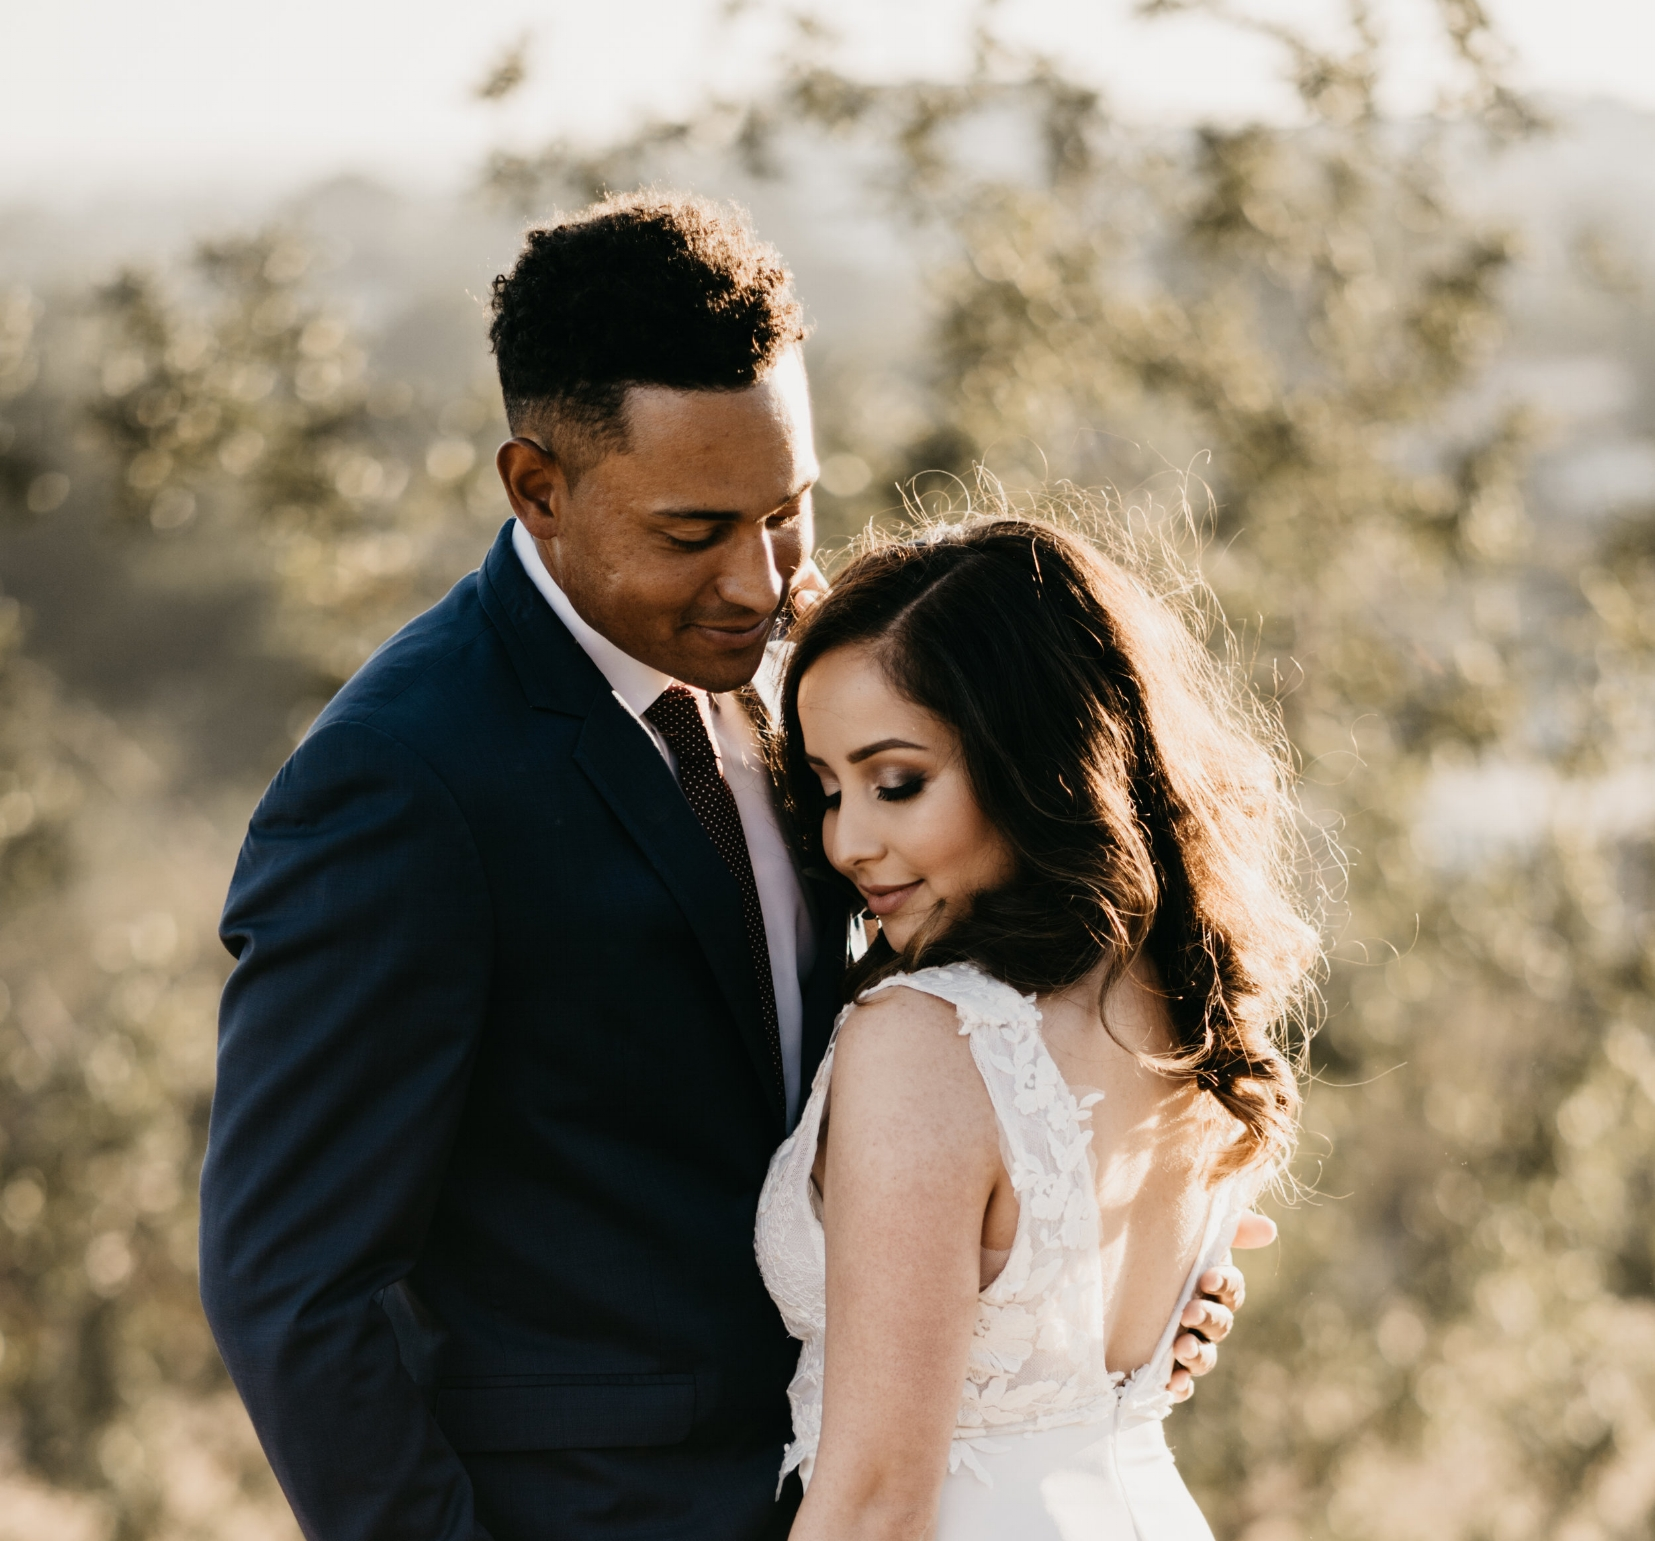 Candid Authentic Raw Wedding Photography